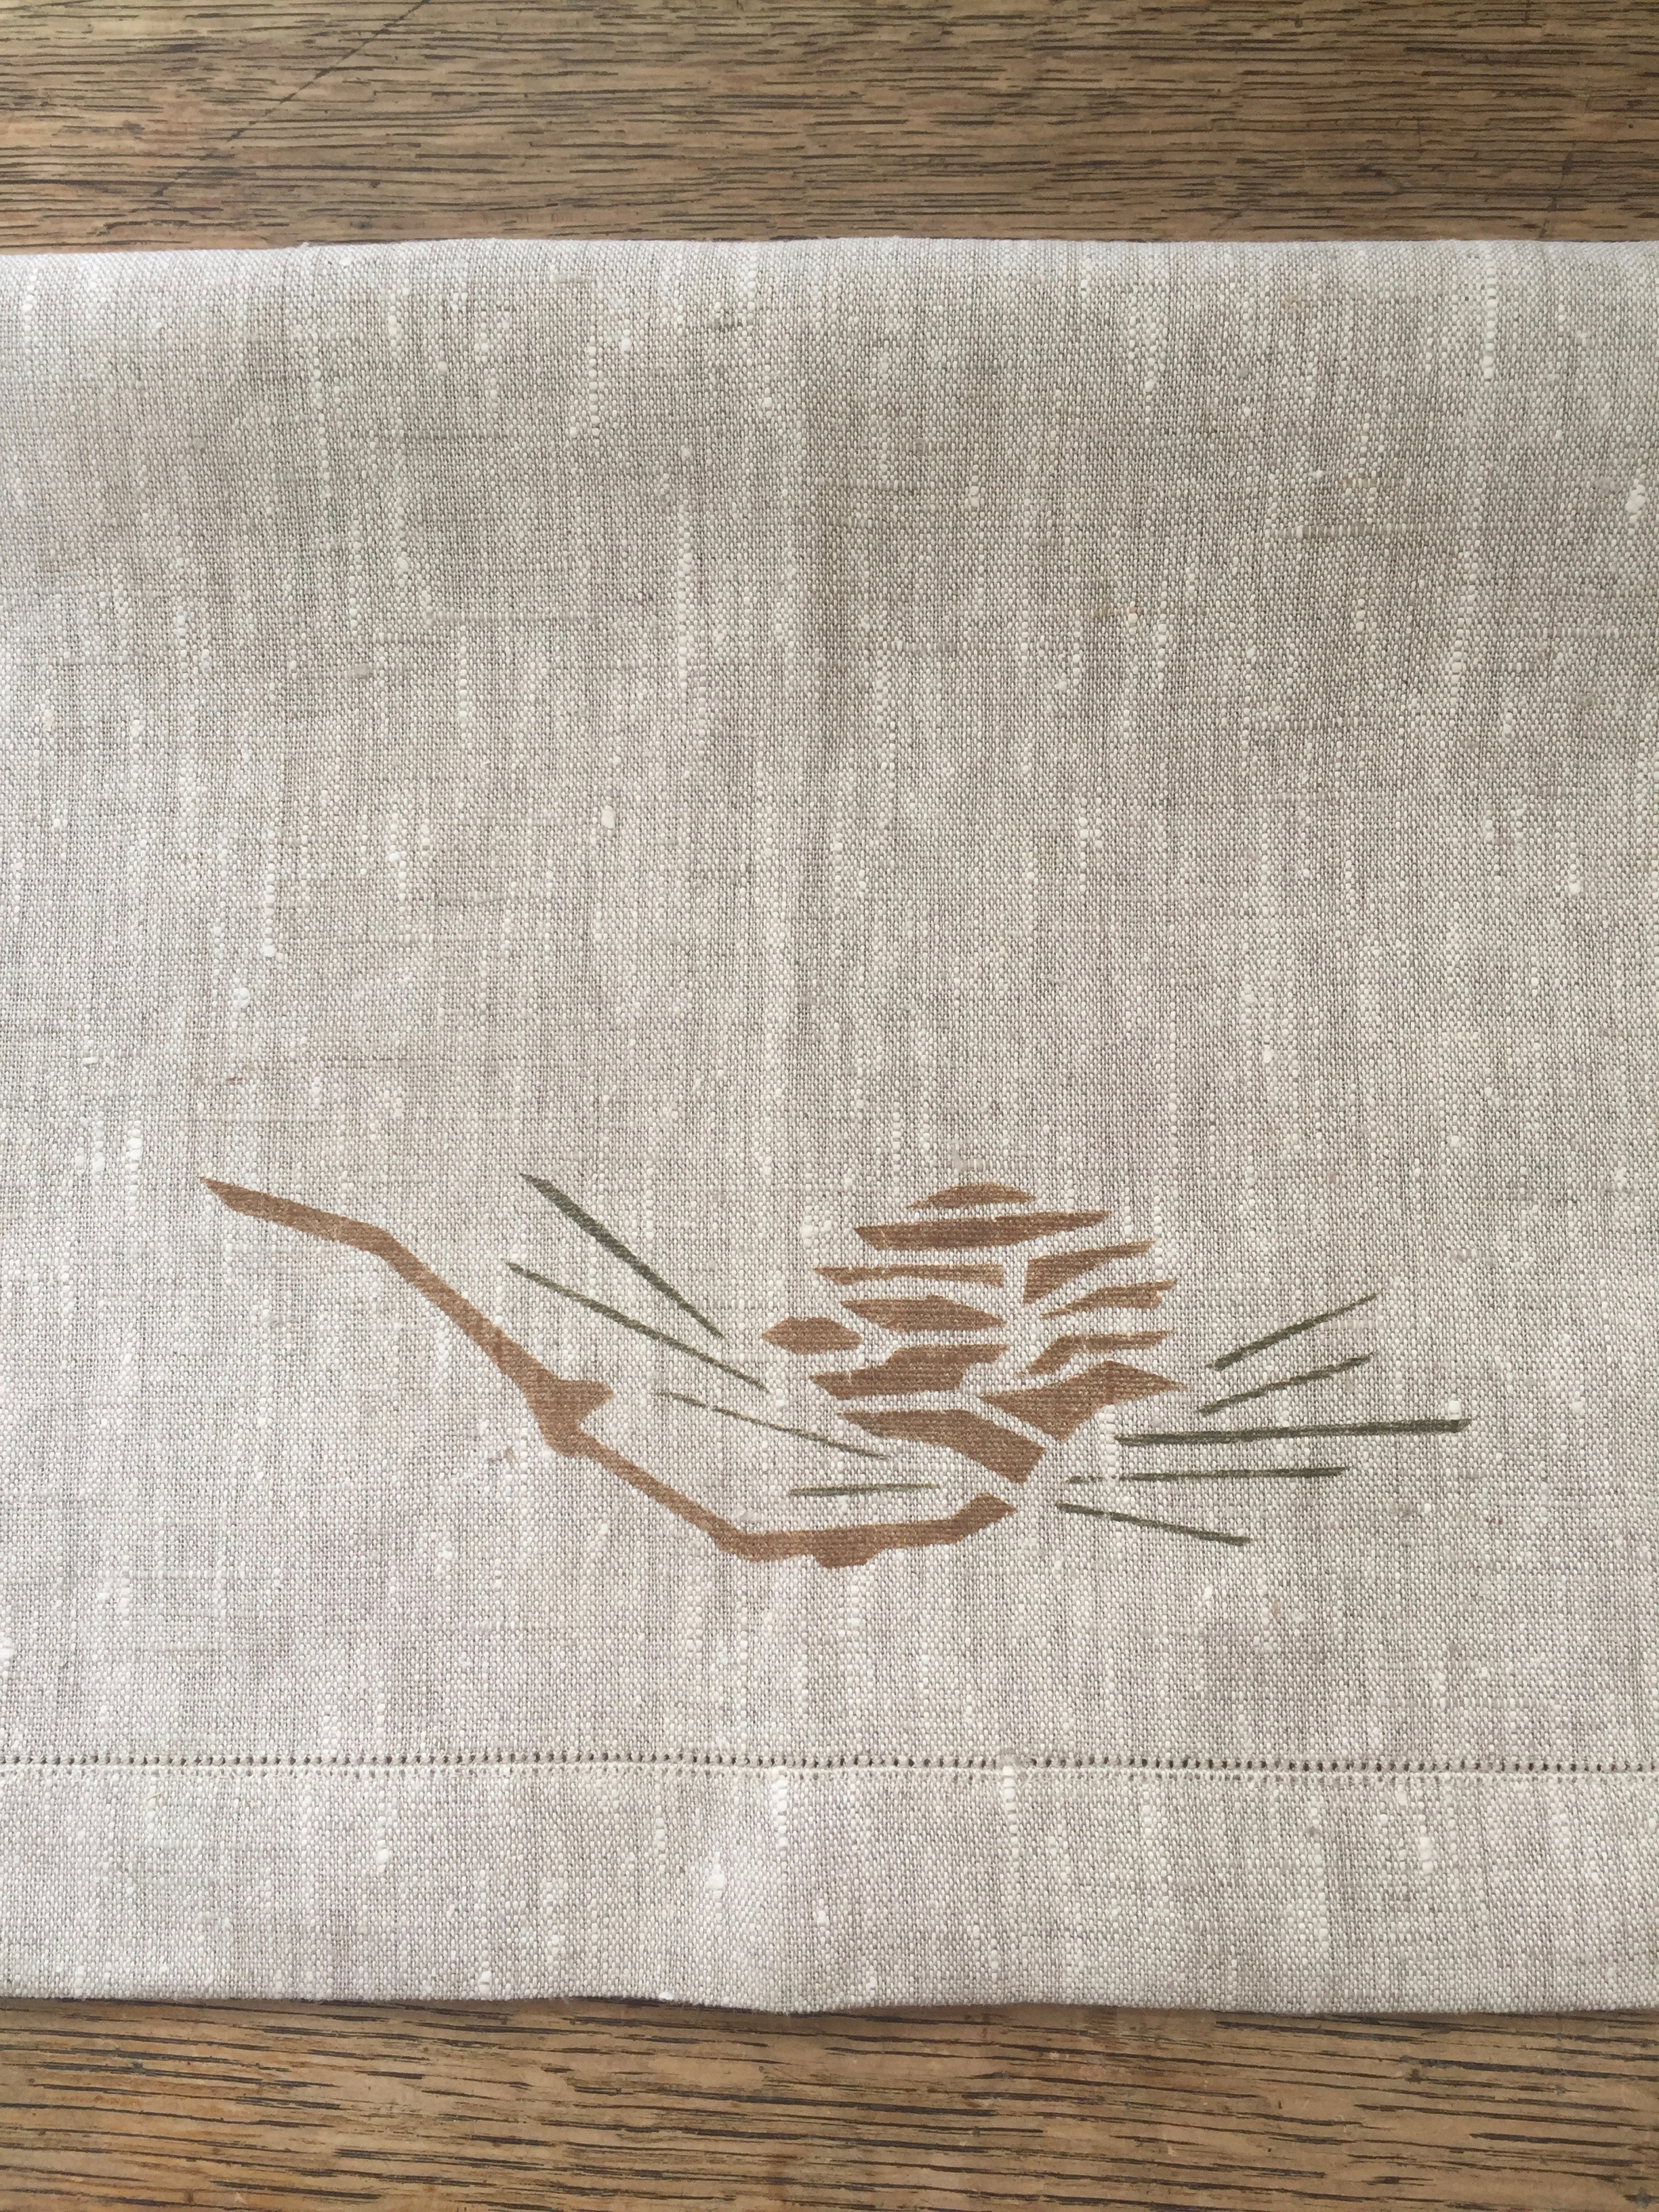 Pine Cone Two Border stencil. A popular motif in whiskey and loden on a custom napkin with pin stitch hem.